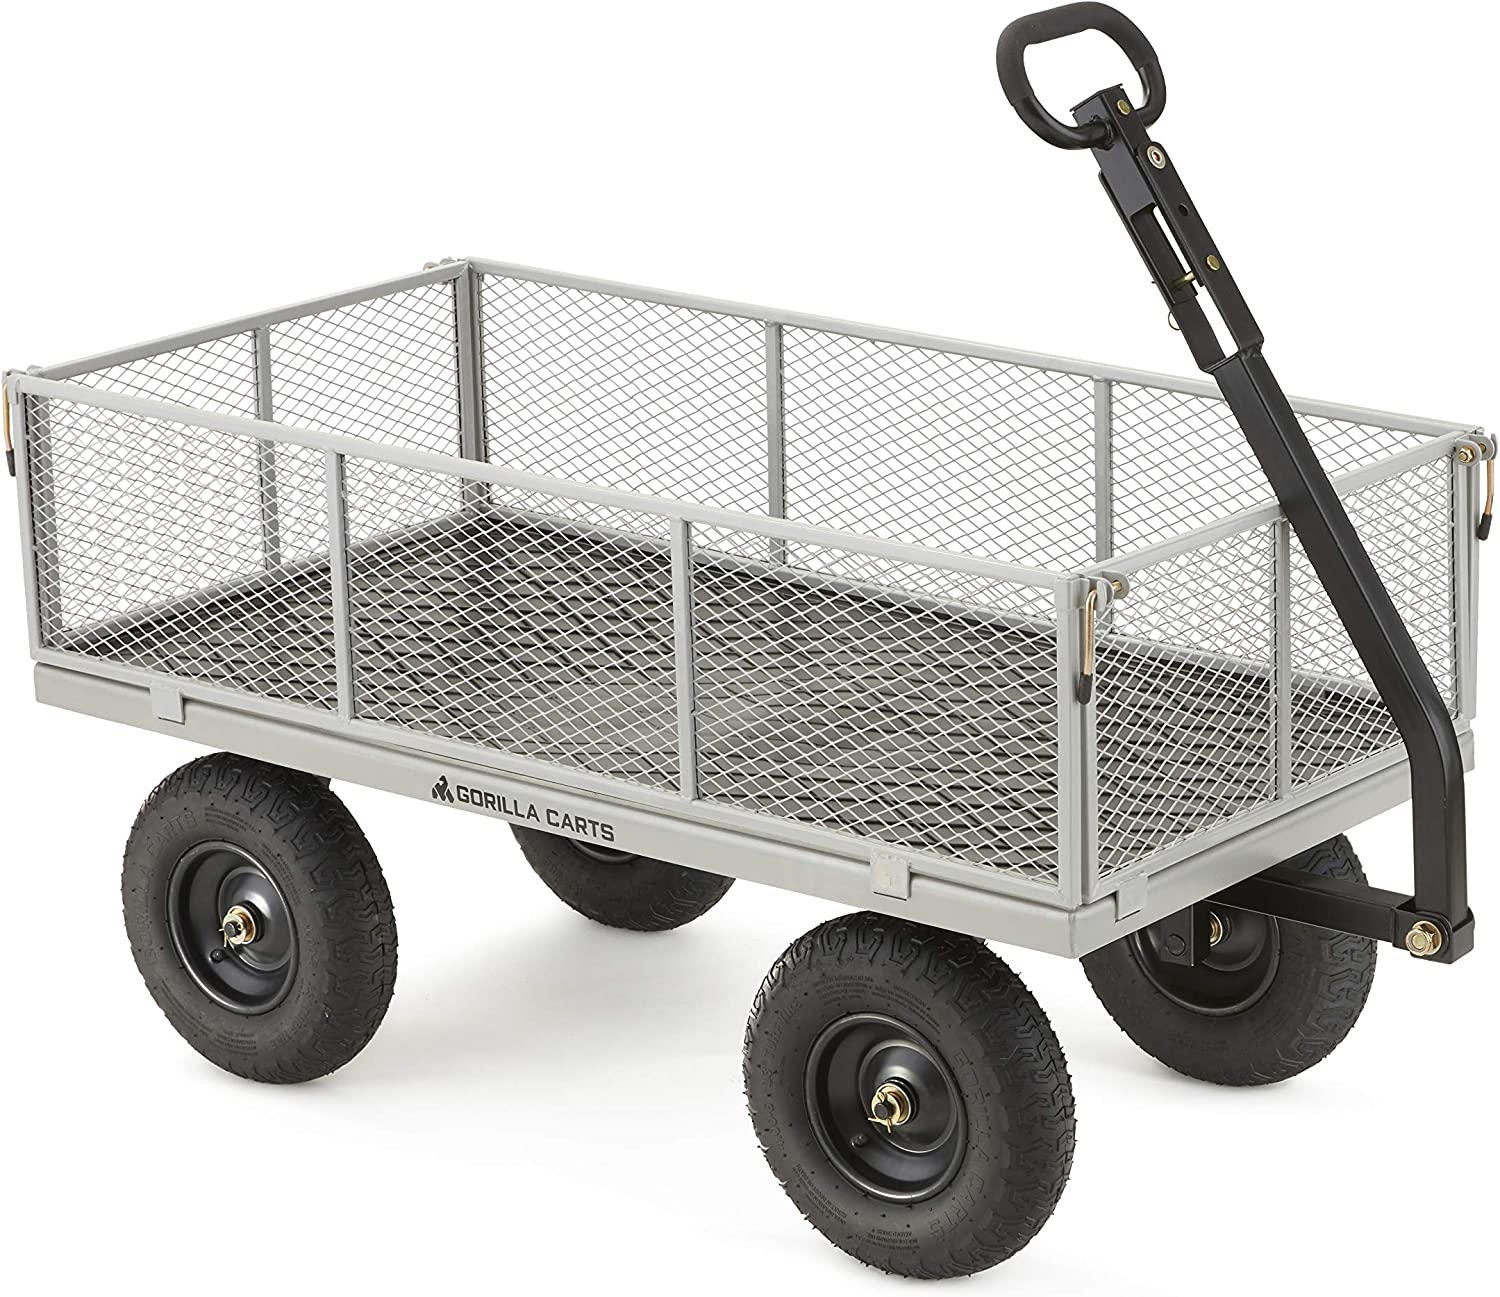 Gorilla Carts Heavy-Duty Steel Utility Cart with Removable Sides